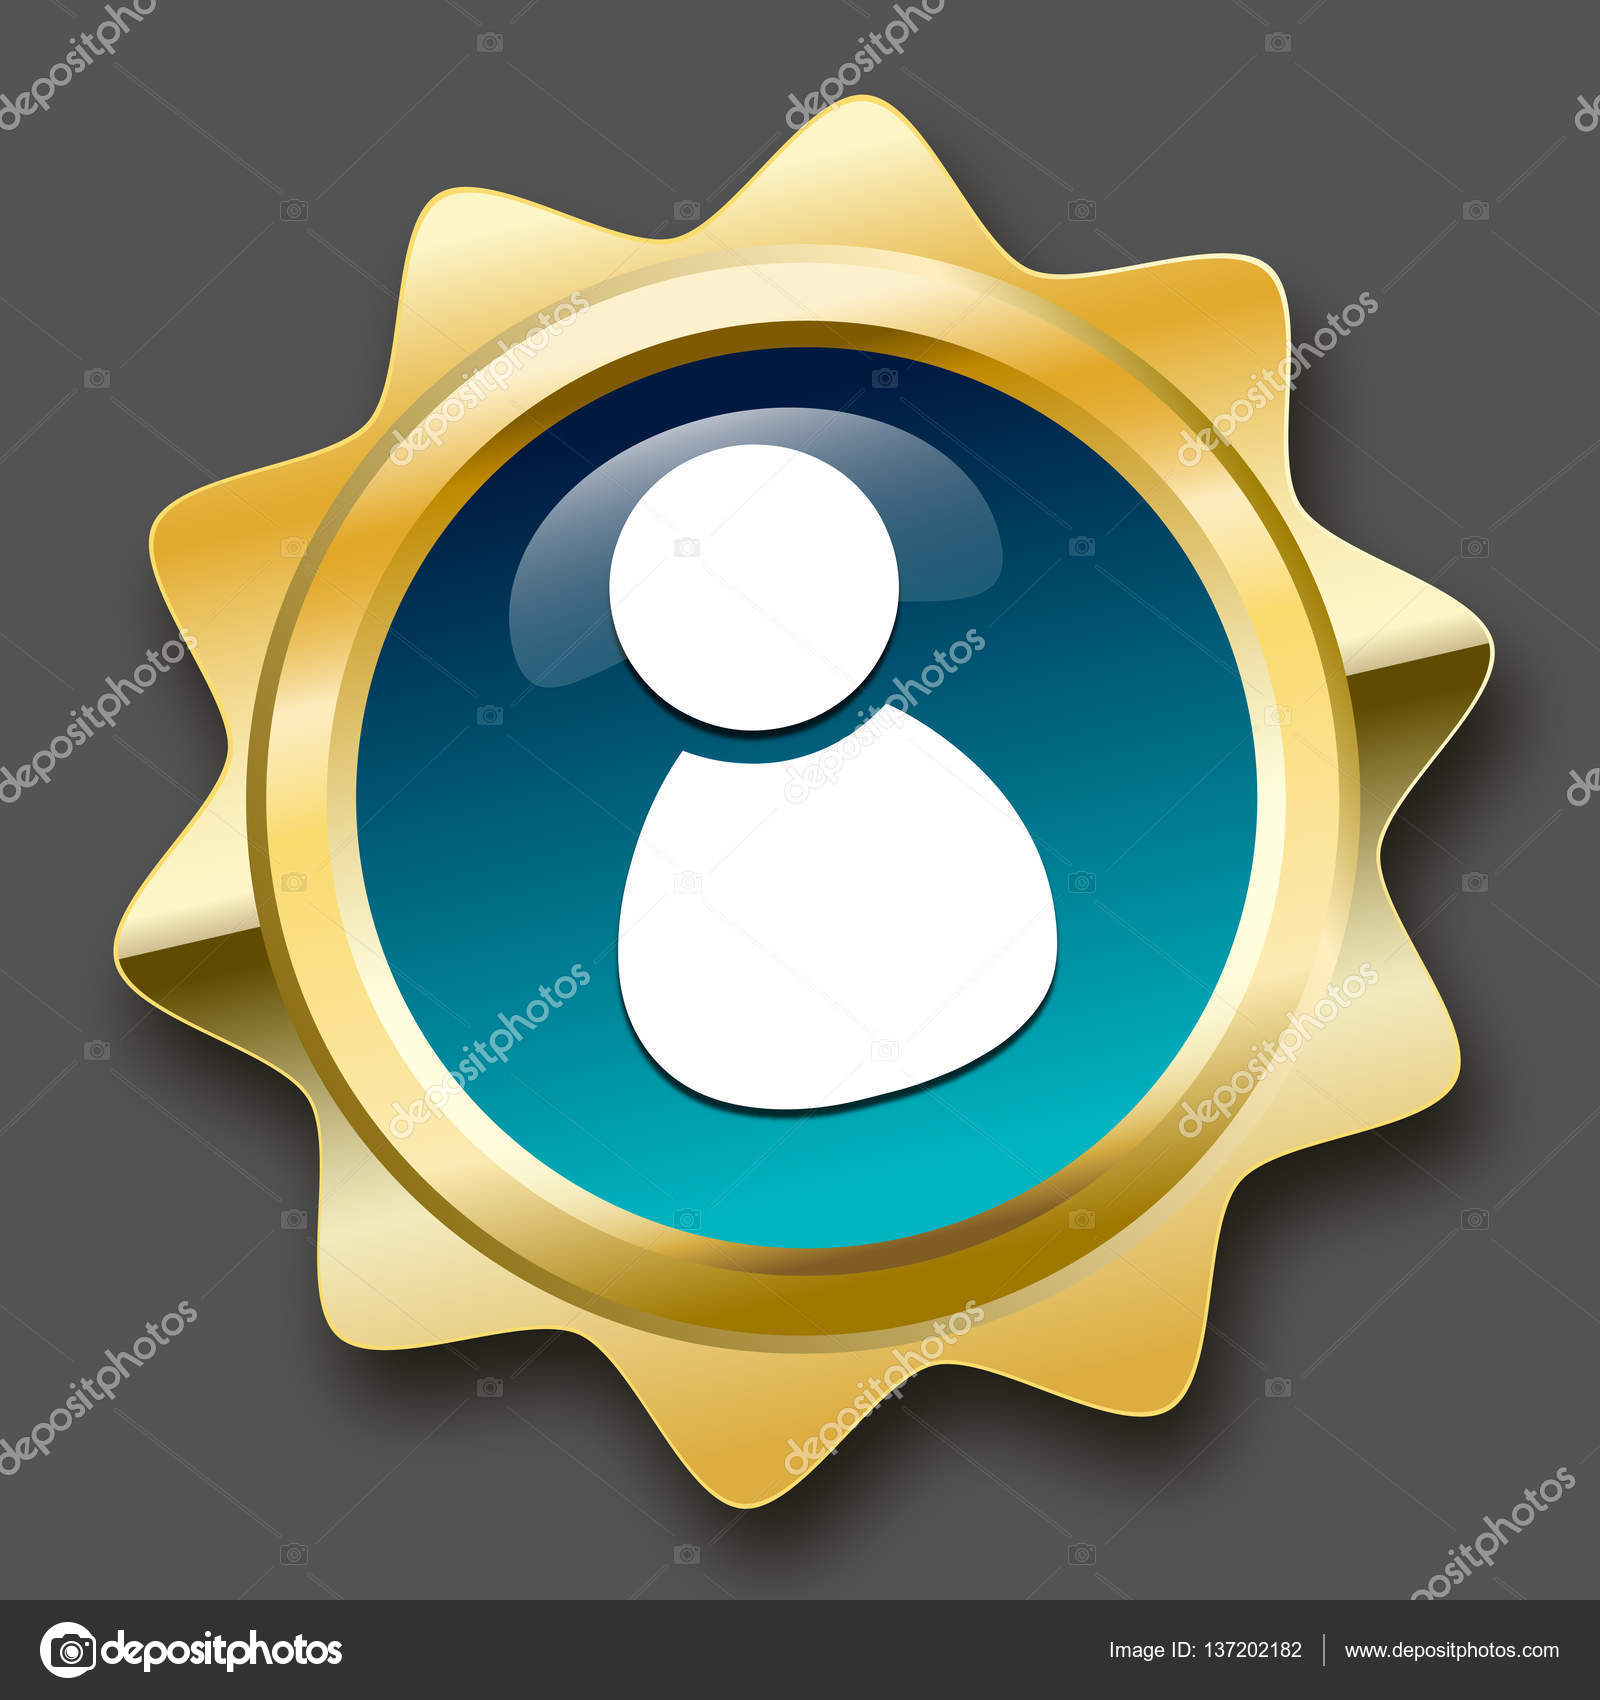 Admin Or best service seal or icon with admin or person symbol